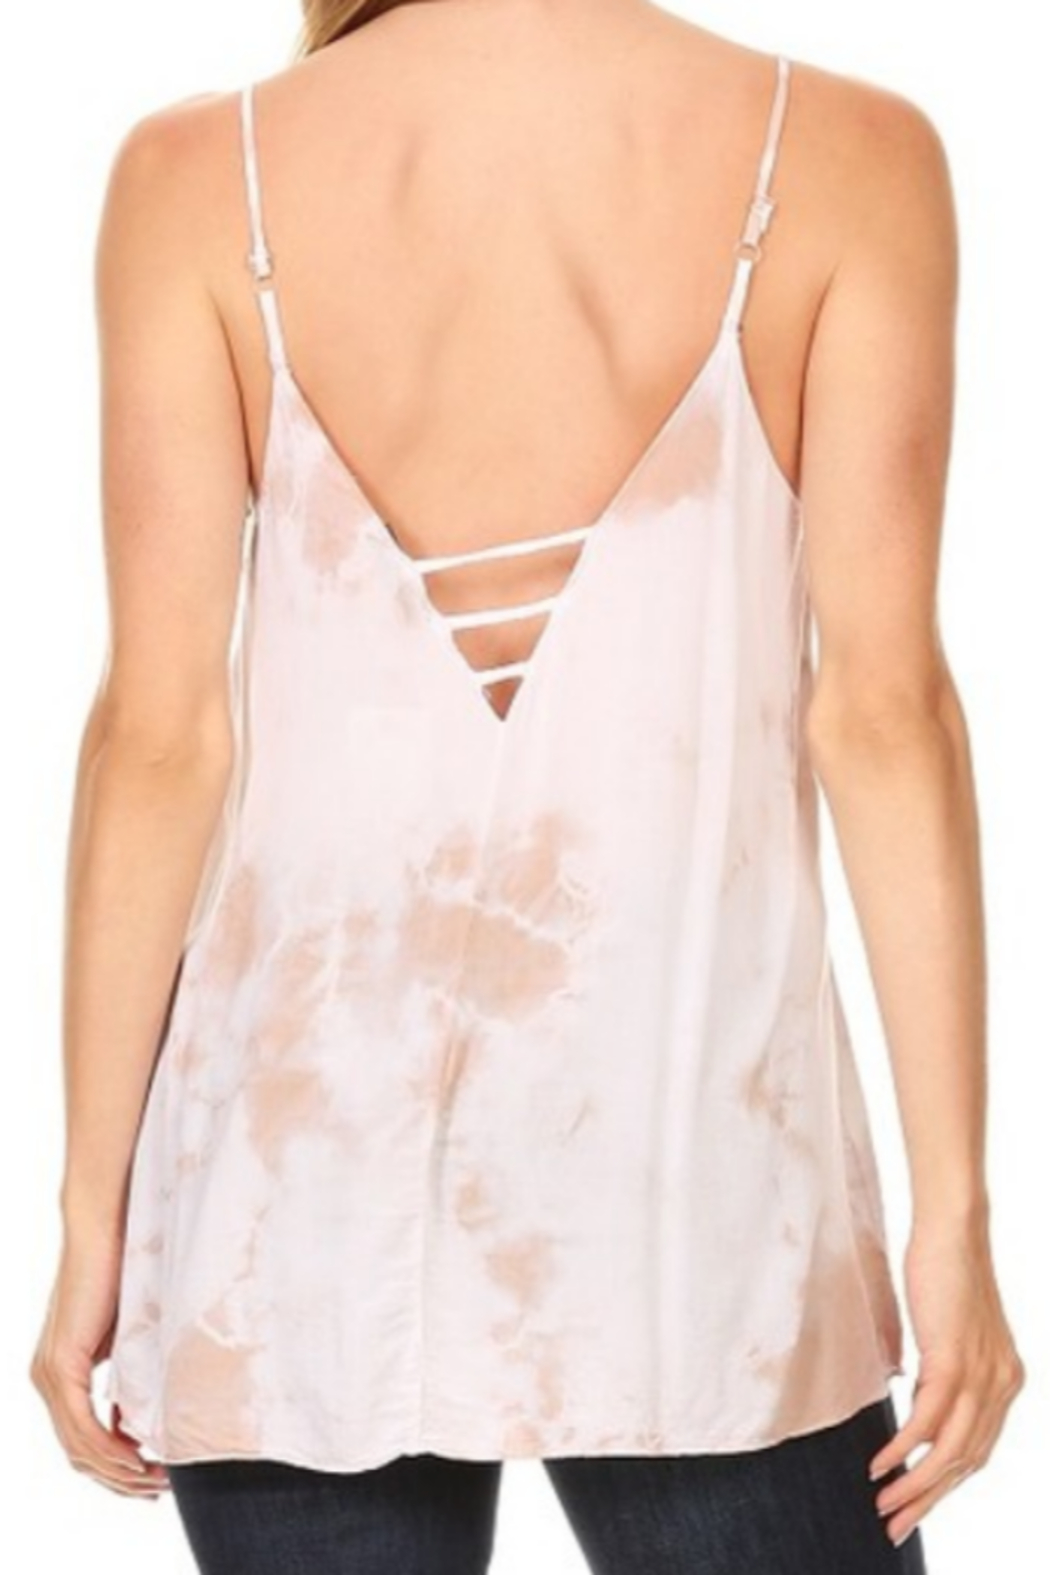 T Party Tie Dyed Cut-Out Back Top - Side Cropped Image